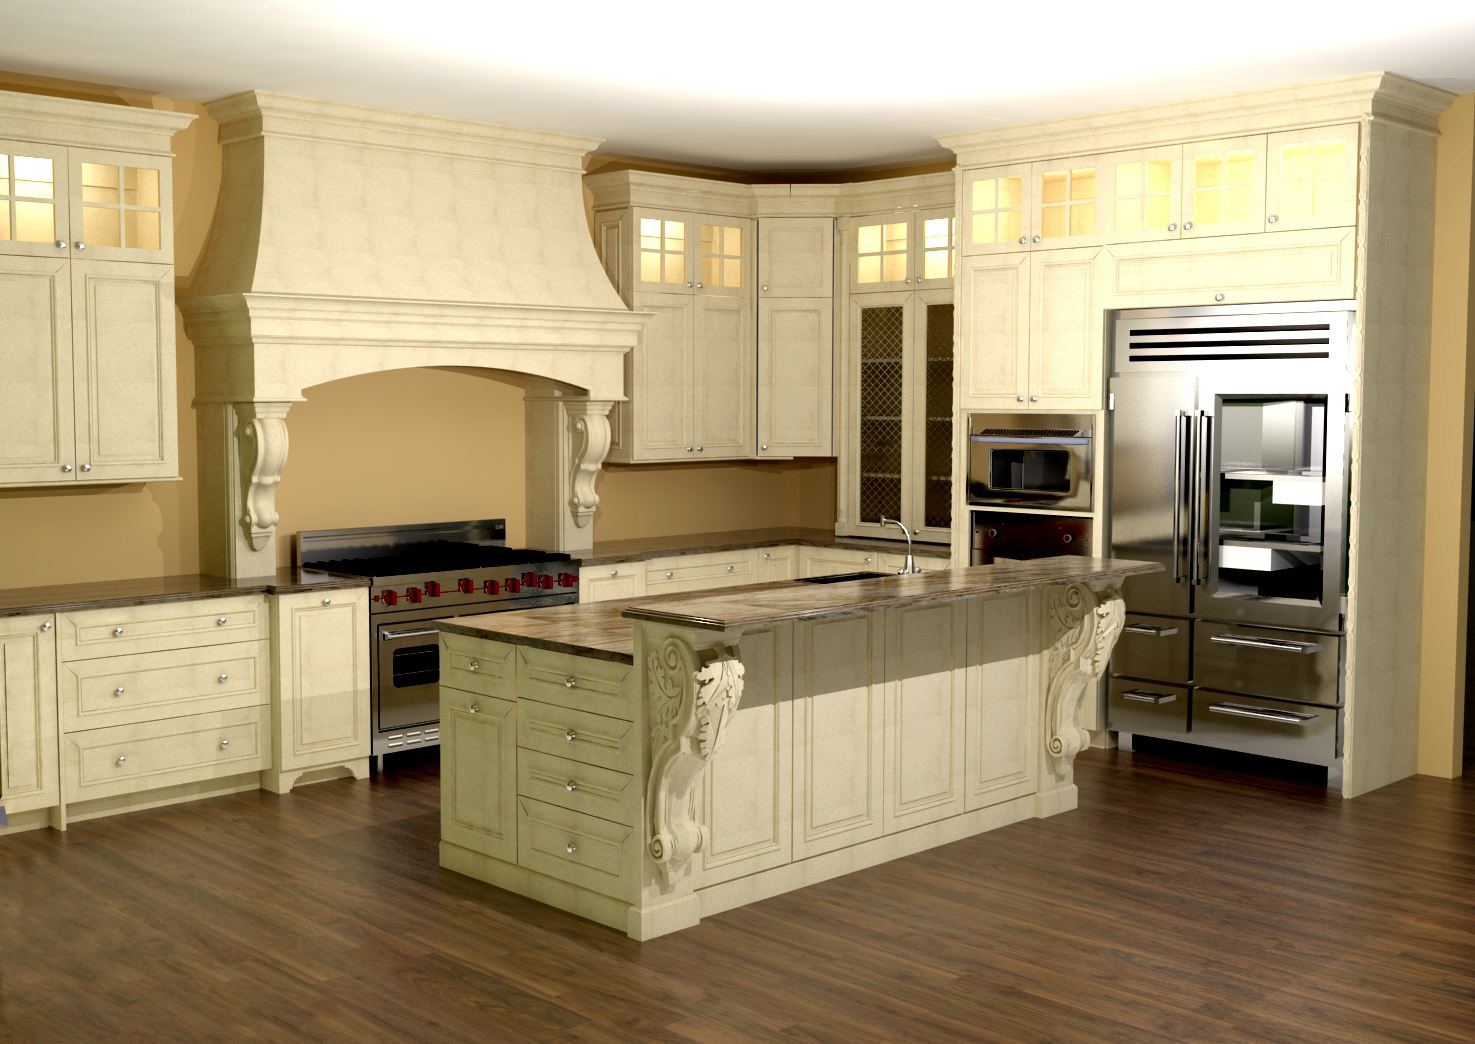 Aquarium Island Kitchen Large Kitchen With Custom Hood. Features Large Enkeboll